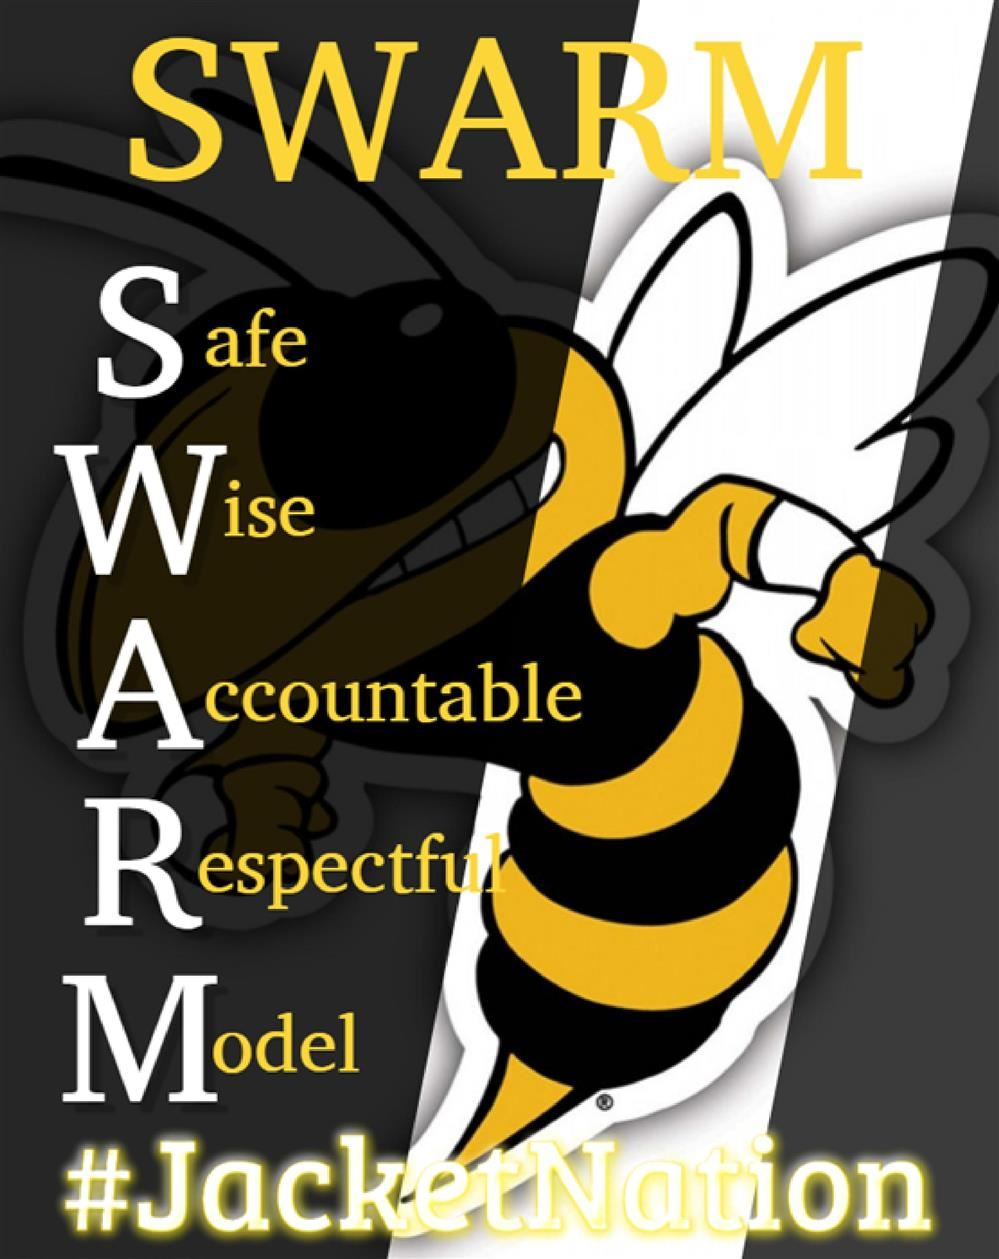 SWARM- Safe, Wise, Accountable, Respectful and Model